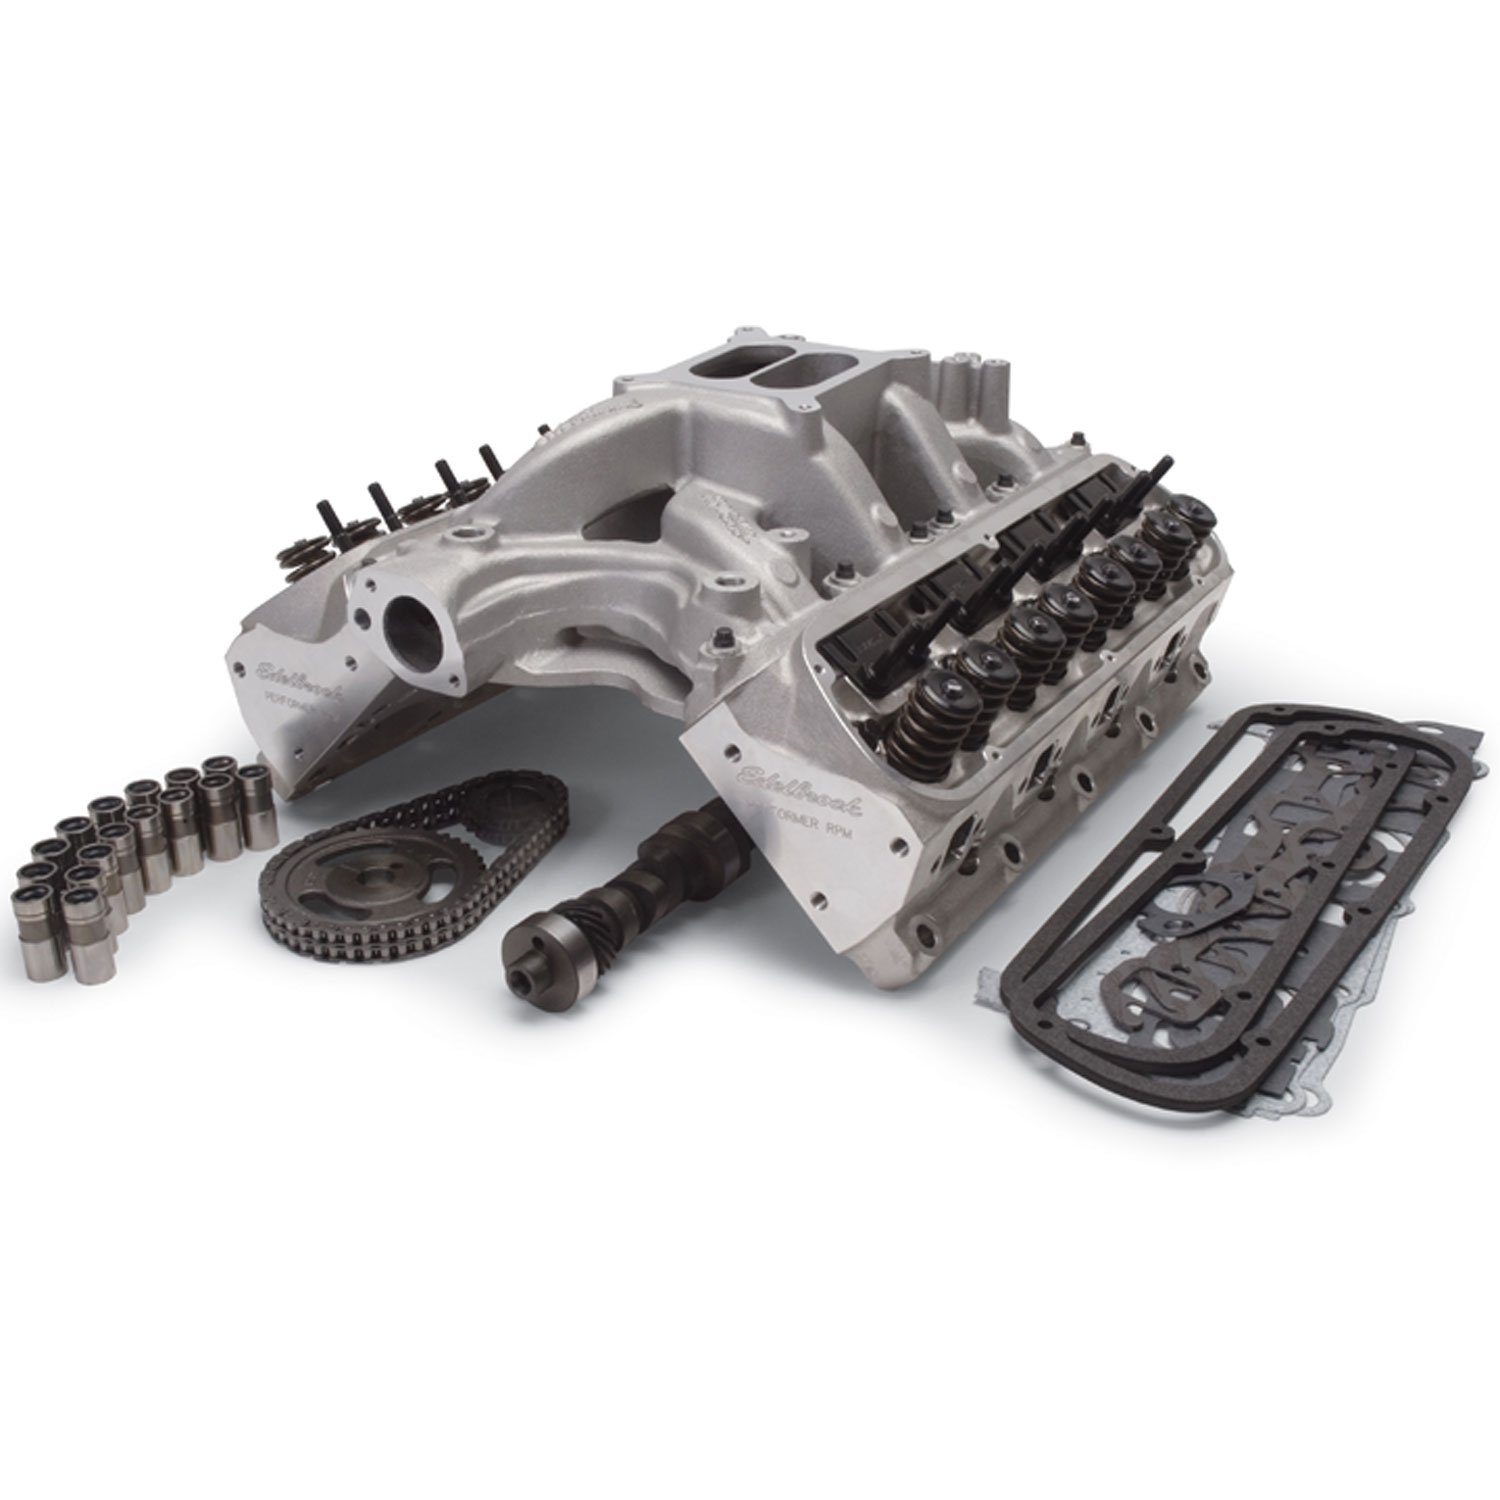 Edelbrock 2019 Rpm Power Package Top End Kit Small Block: Edelbrock 2092: RPM Power Package Top End Kit For 1969